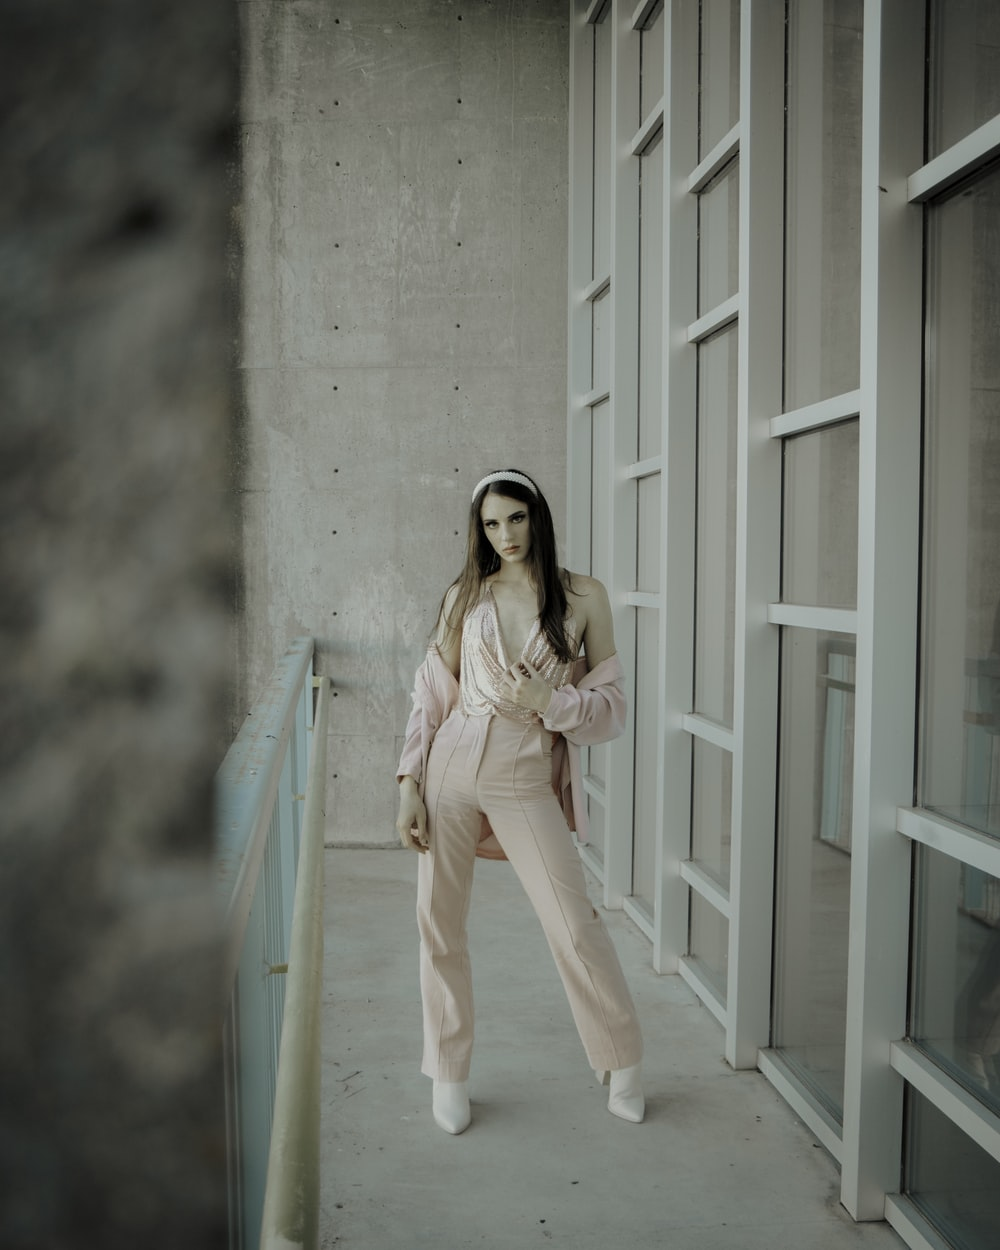 woman in pink long sleeve shirt and white pants standing on white wooden floor